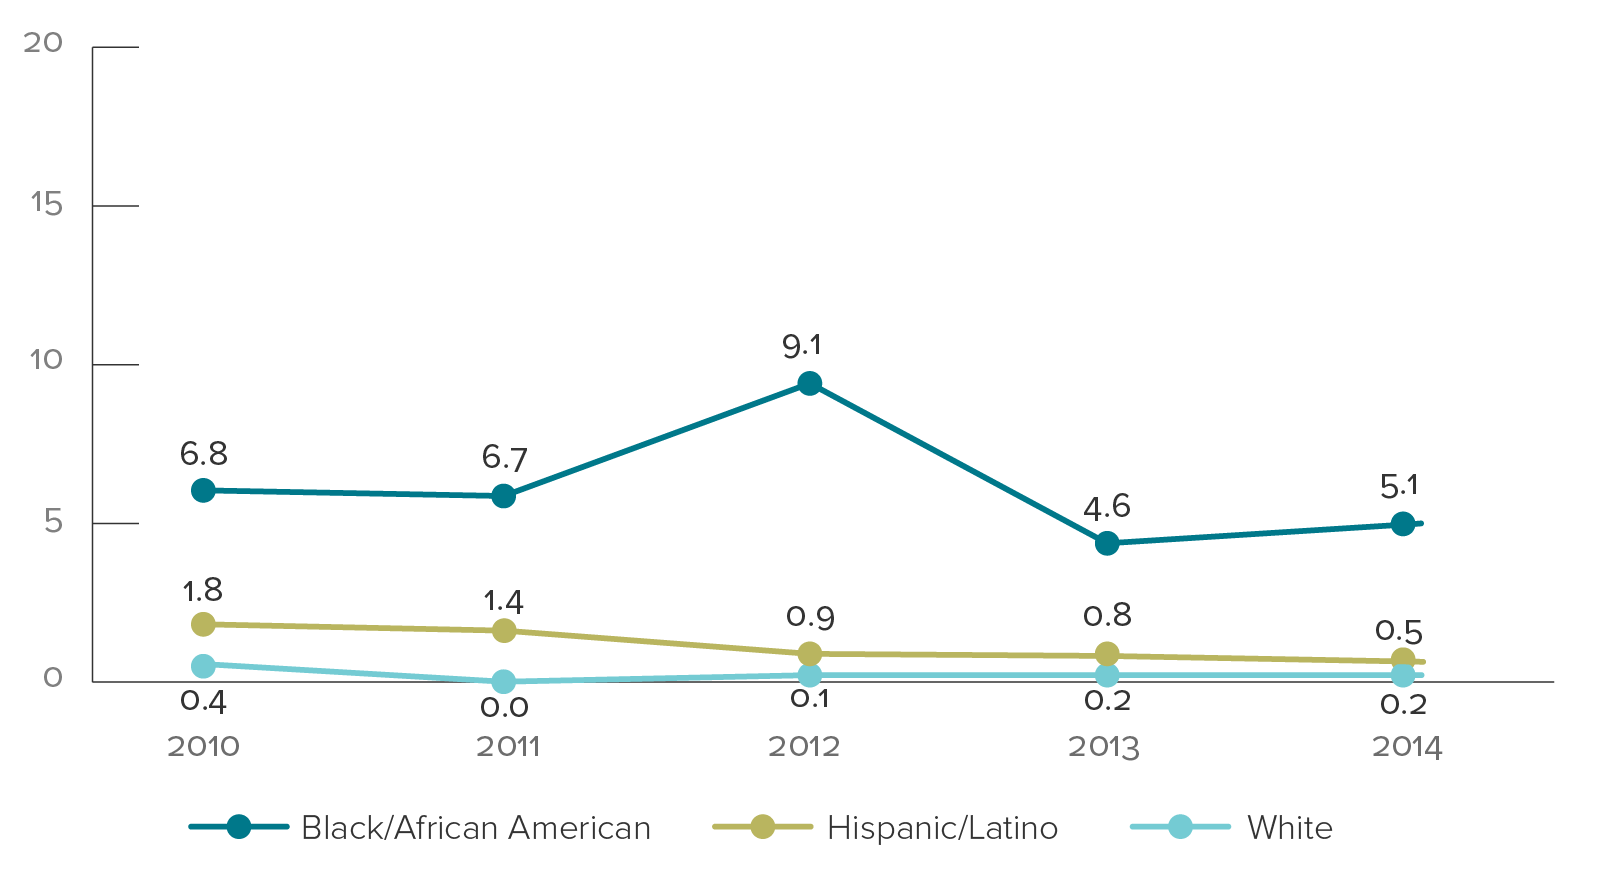 Line graph shows the rates (per 100,000 live births) of perinatally acquired HIV infections by year of birth and the mother's race/ethnicity, 2008-2012 in the United States: Black/African American: 14.0 in 2008, 16.2 in 2009, 10.0 in 2010, 10.2 in 2011, 15.1 in 2012. Hispanic/Latino: 2.6 in 2008, 3.2 in 2009, 3.0 in 2010, 2.4 in 2011, 1.7 in 2012. White: 1.6 in 2008, 0.5 in 2009, 0.8 in 2010, 0.4 in 2011, 0.3 in 2012.